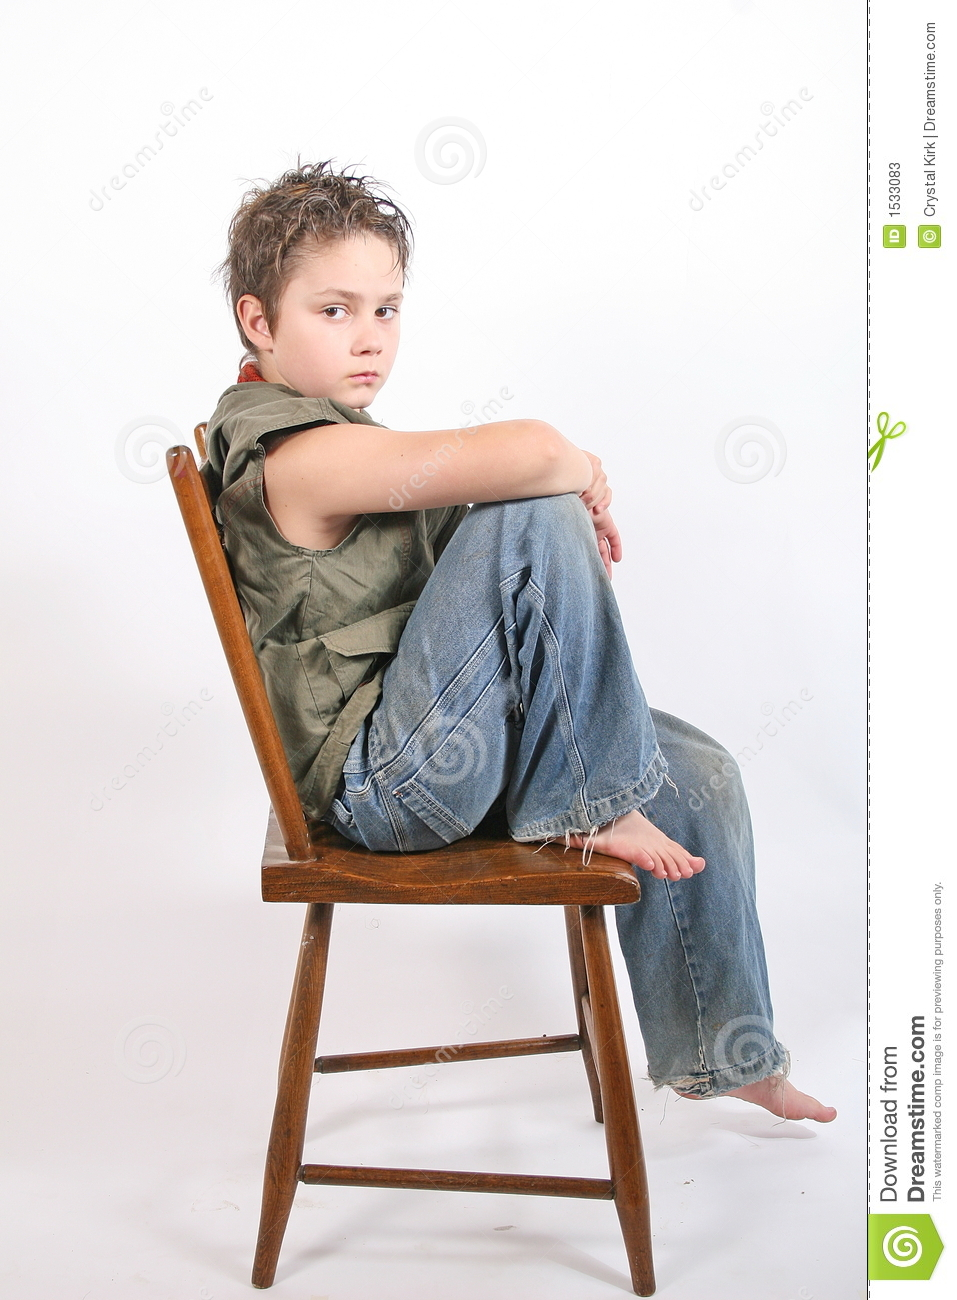 Sitting On Chair Stock Photos - Image: 1533083